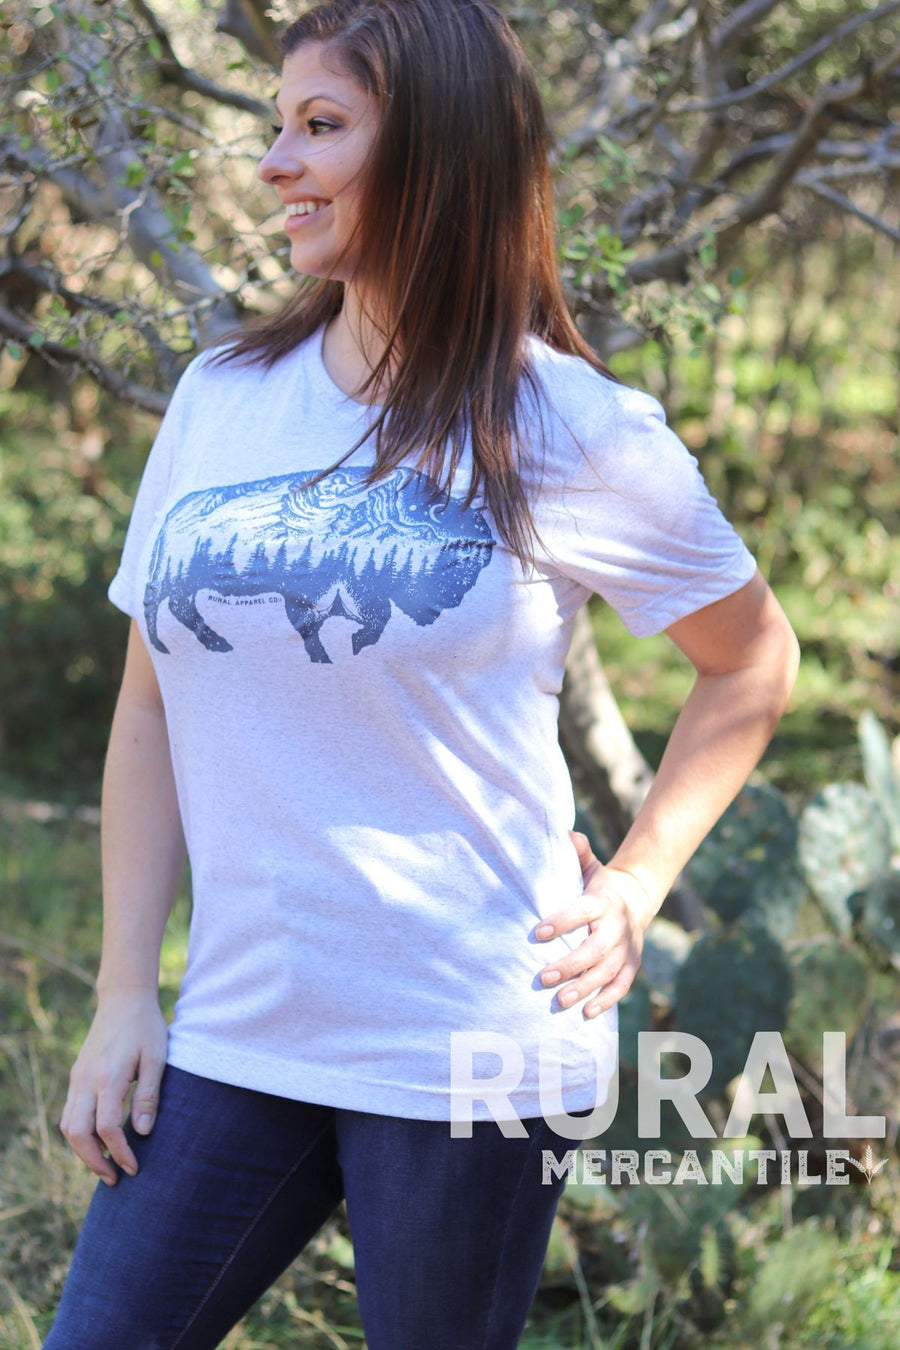 Buffalo Outpost Graphic Tee, graphic tee, Buffalo Outpost Graphic T-shirt, rural t-shirt, buffalo t-shirt, buffalo tee, country shirt, country girl tee, country girl cute shirt, bison womens tee, camping tee, mountains graphic tee, buffalo top, buffalo shirt, rural graphic t-shirt, rural mercantile, jamesport missouri